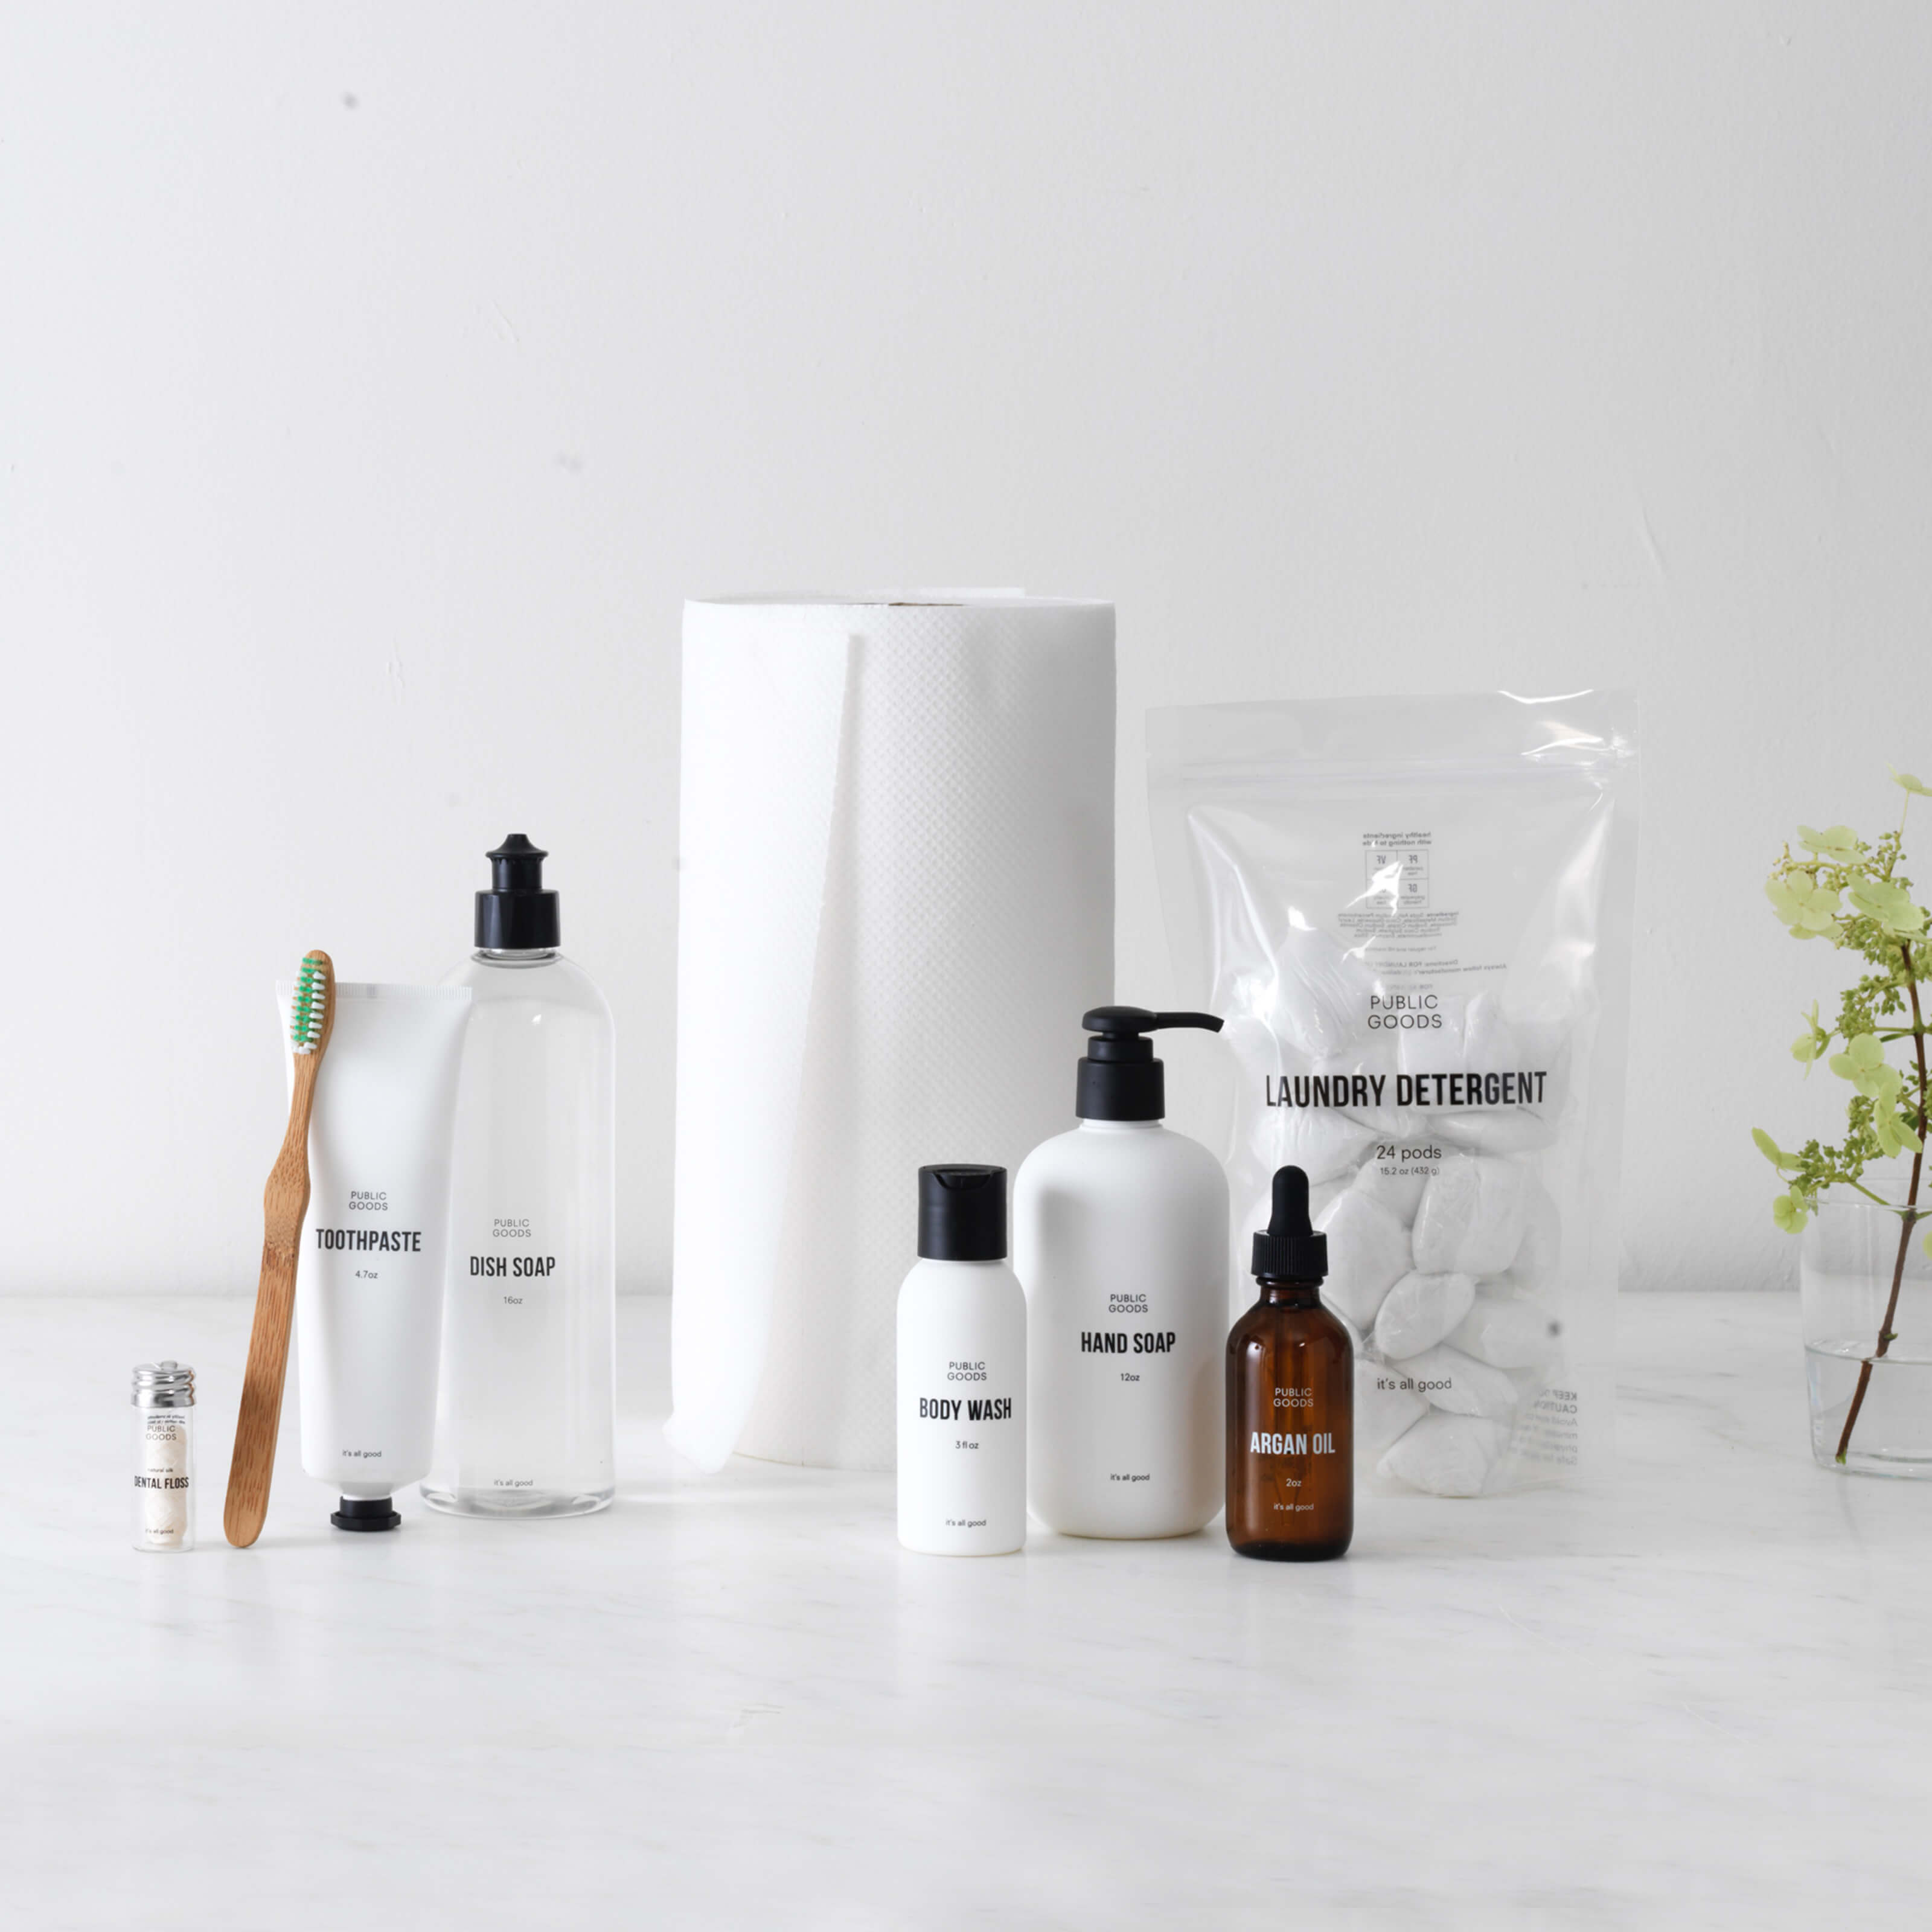 Dry Skin vs. Public Goods Products